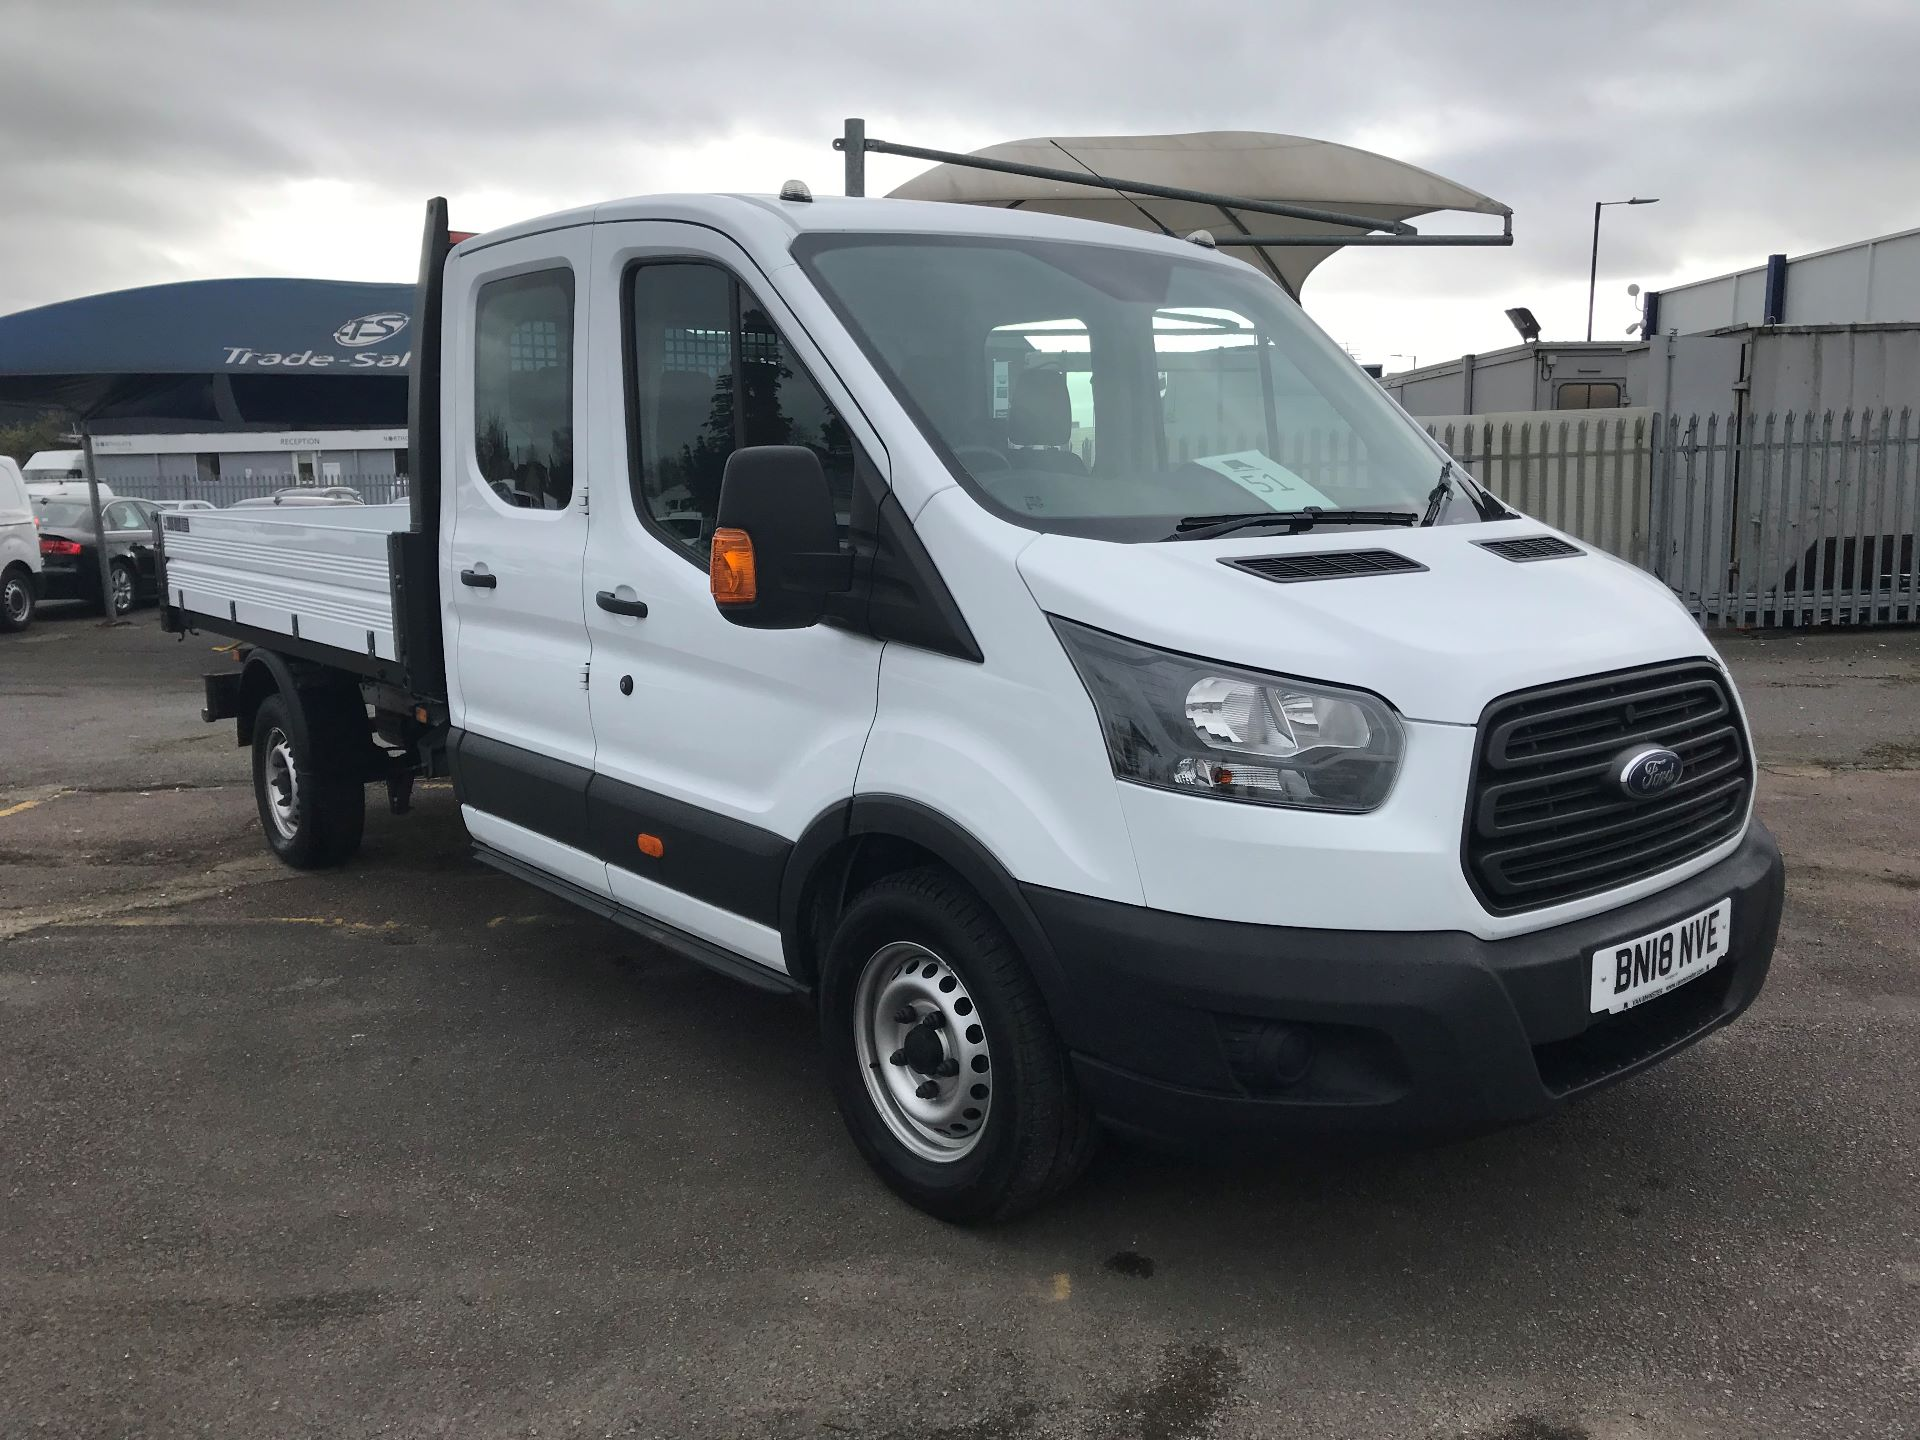 2018 Ford Transit 2.0 TDCi 130ps One Stop D/Cab Tipper [1 Way]